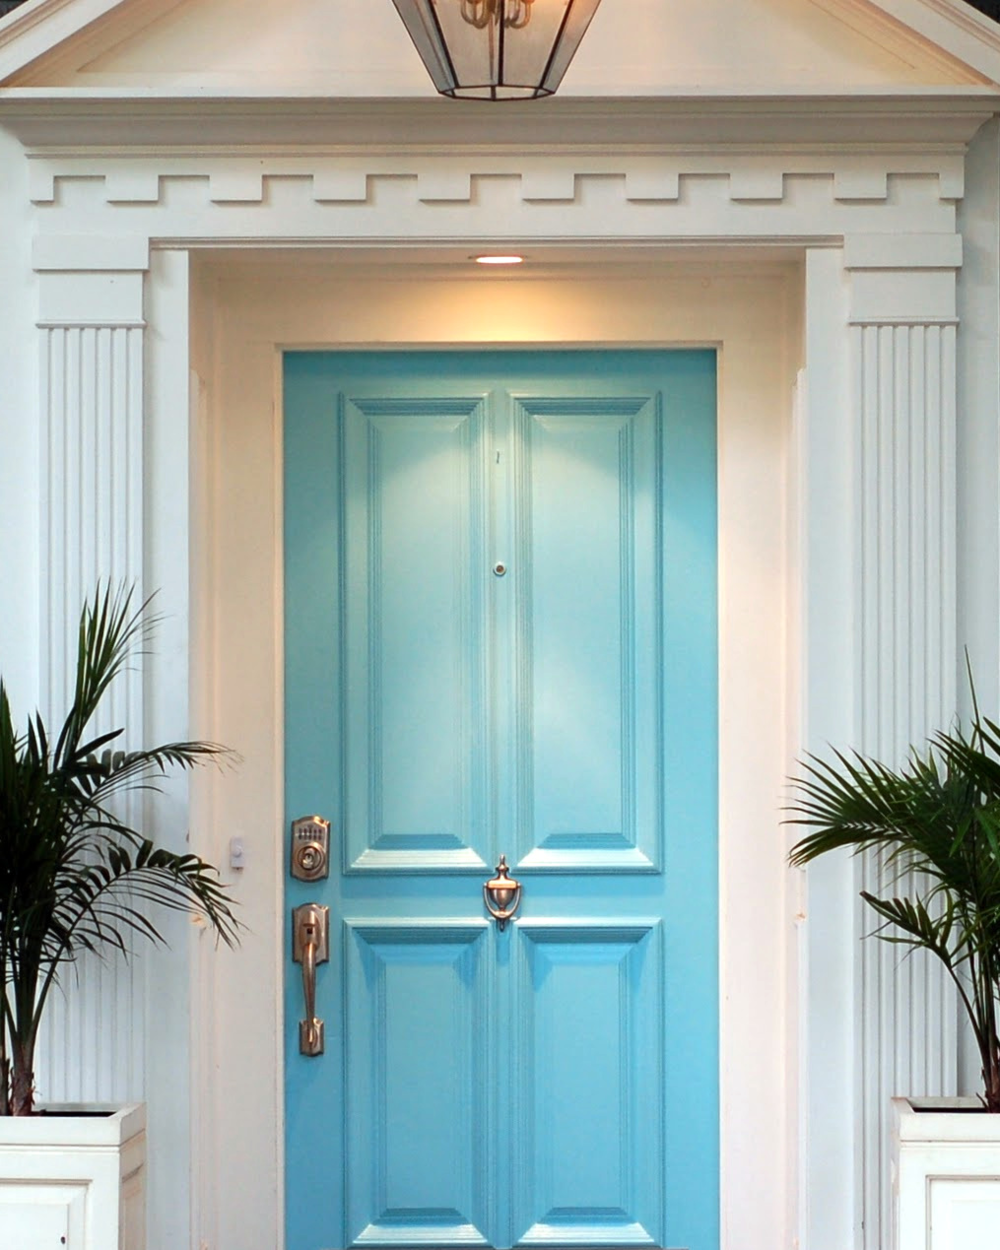 This light blue is so pretty, and it really looks sleek with the contrast of the off-white mill work. The columns and capitols adds to the elegant feel of this entry.